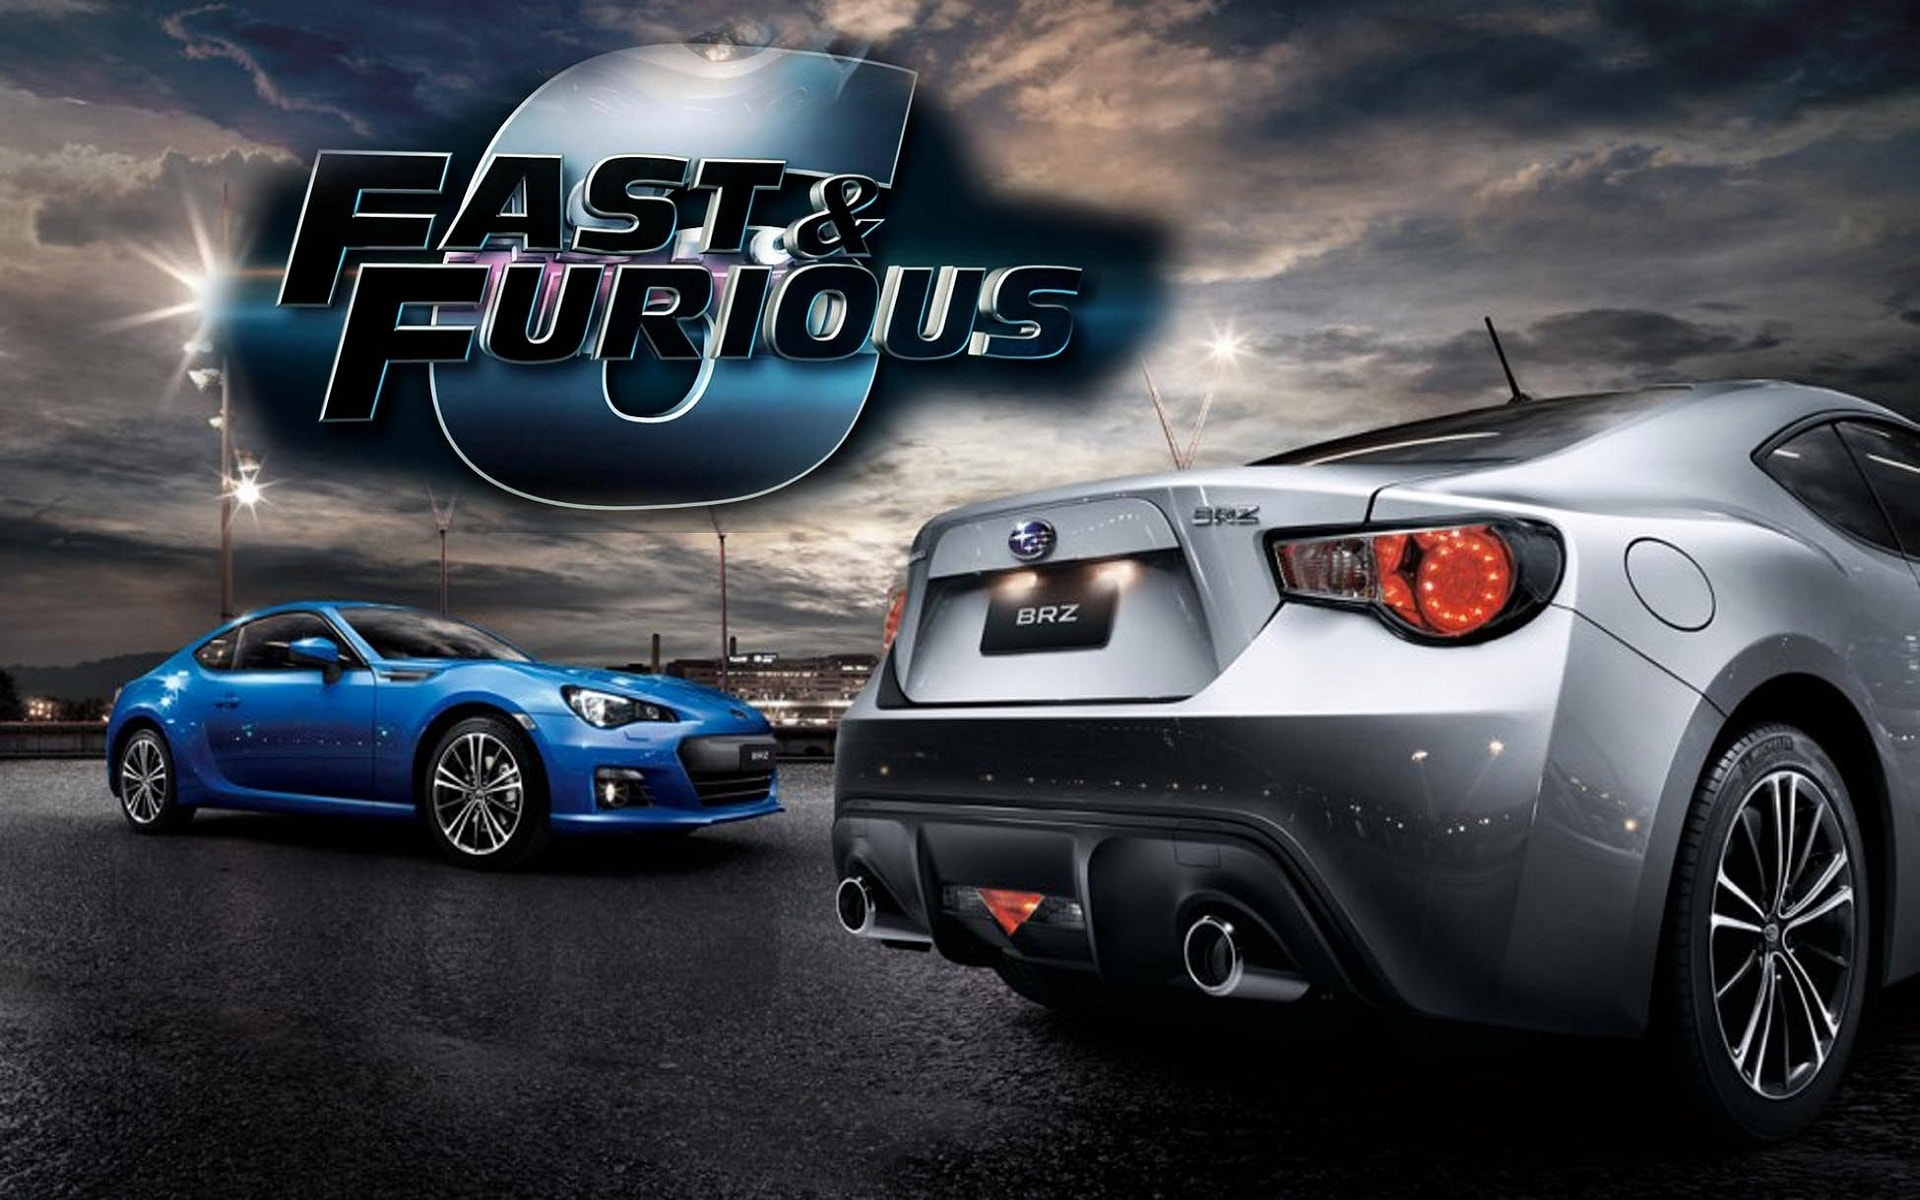 Fast & Furious 6 for mobile